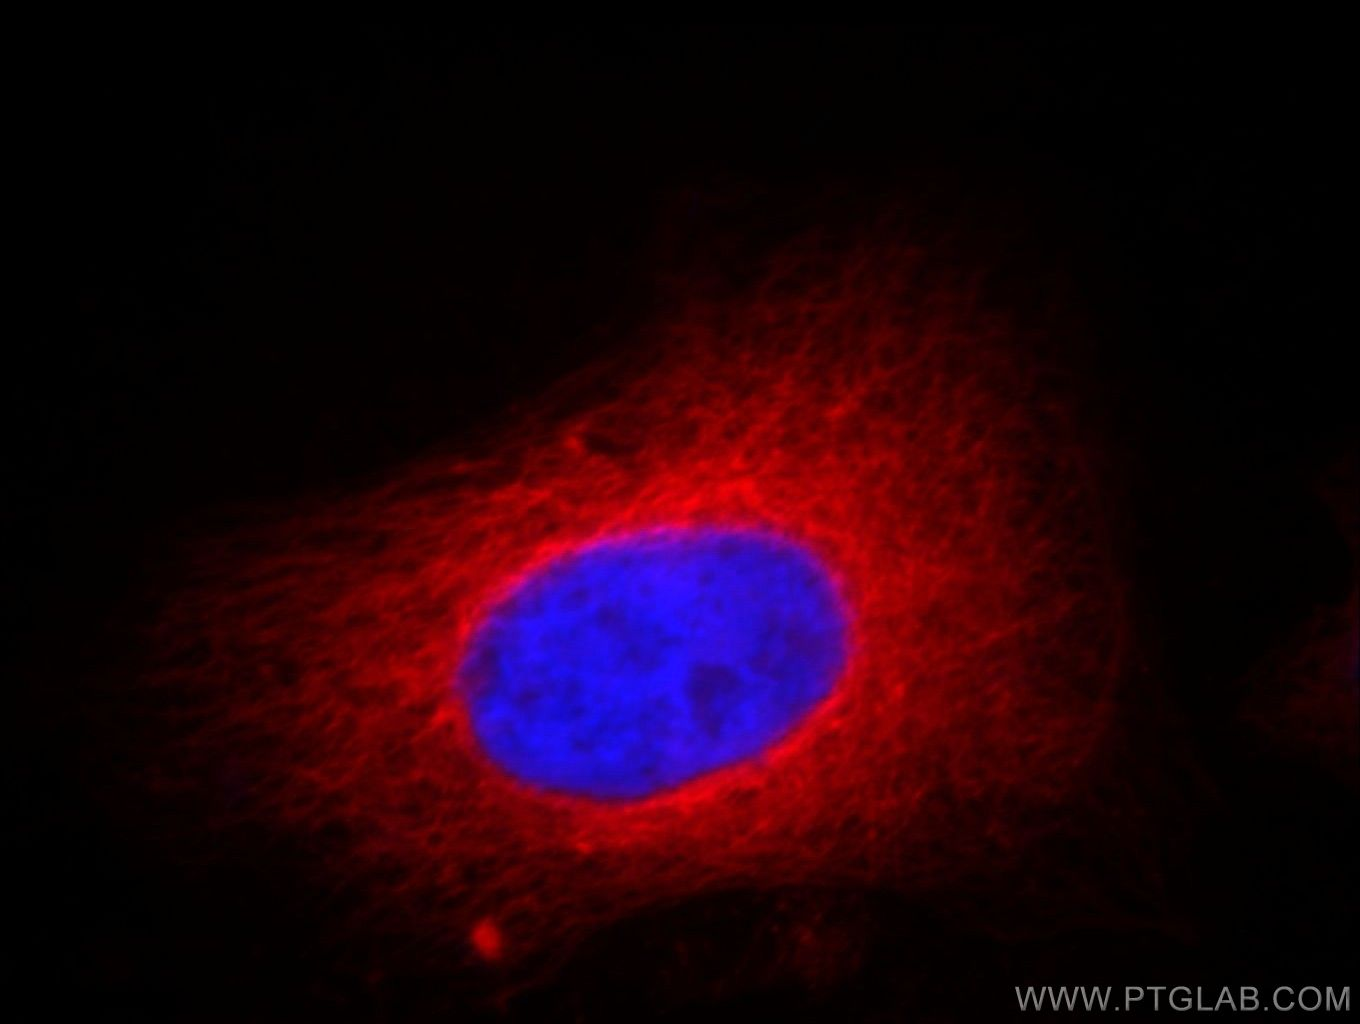 Tubulin-Alpha Immunofluorescence IF 66031-1-Ig Tubulin-Alpha Antibody K-ALPHA-1